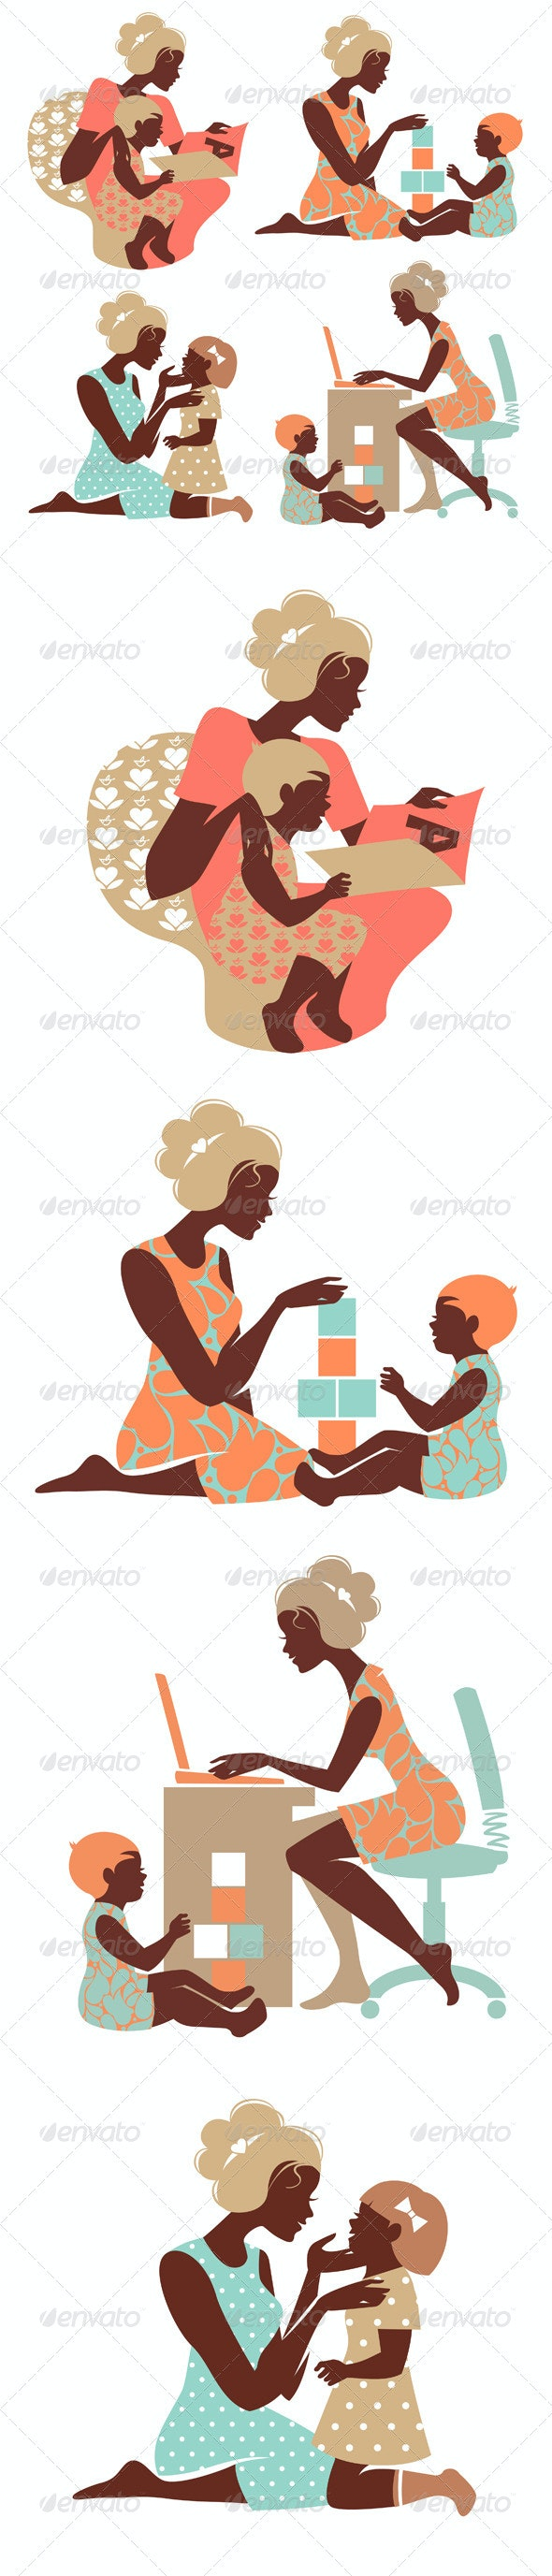 Set of Mother and Baby Silhouettes - People Characters